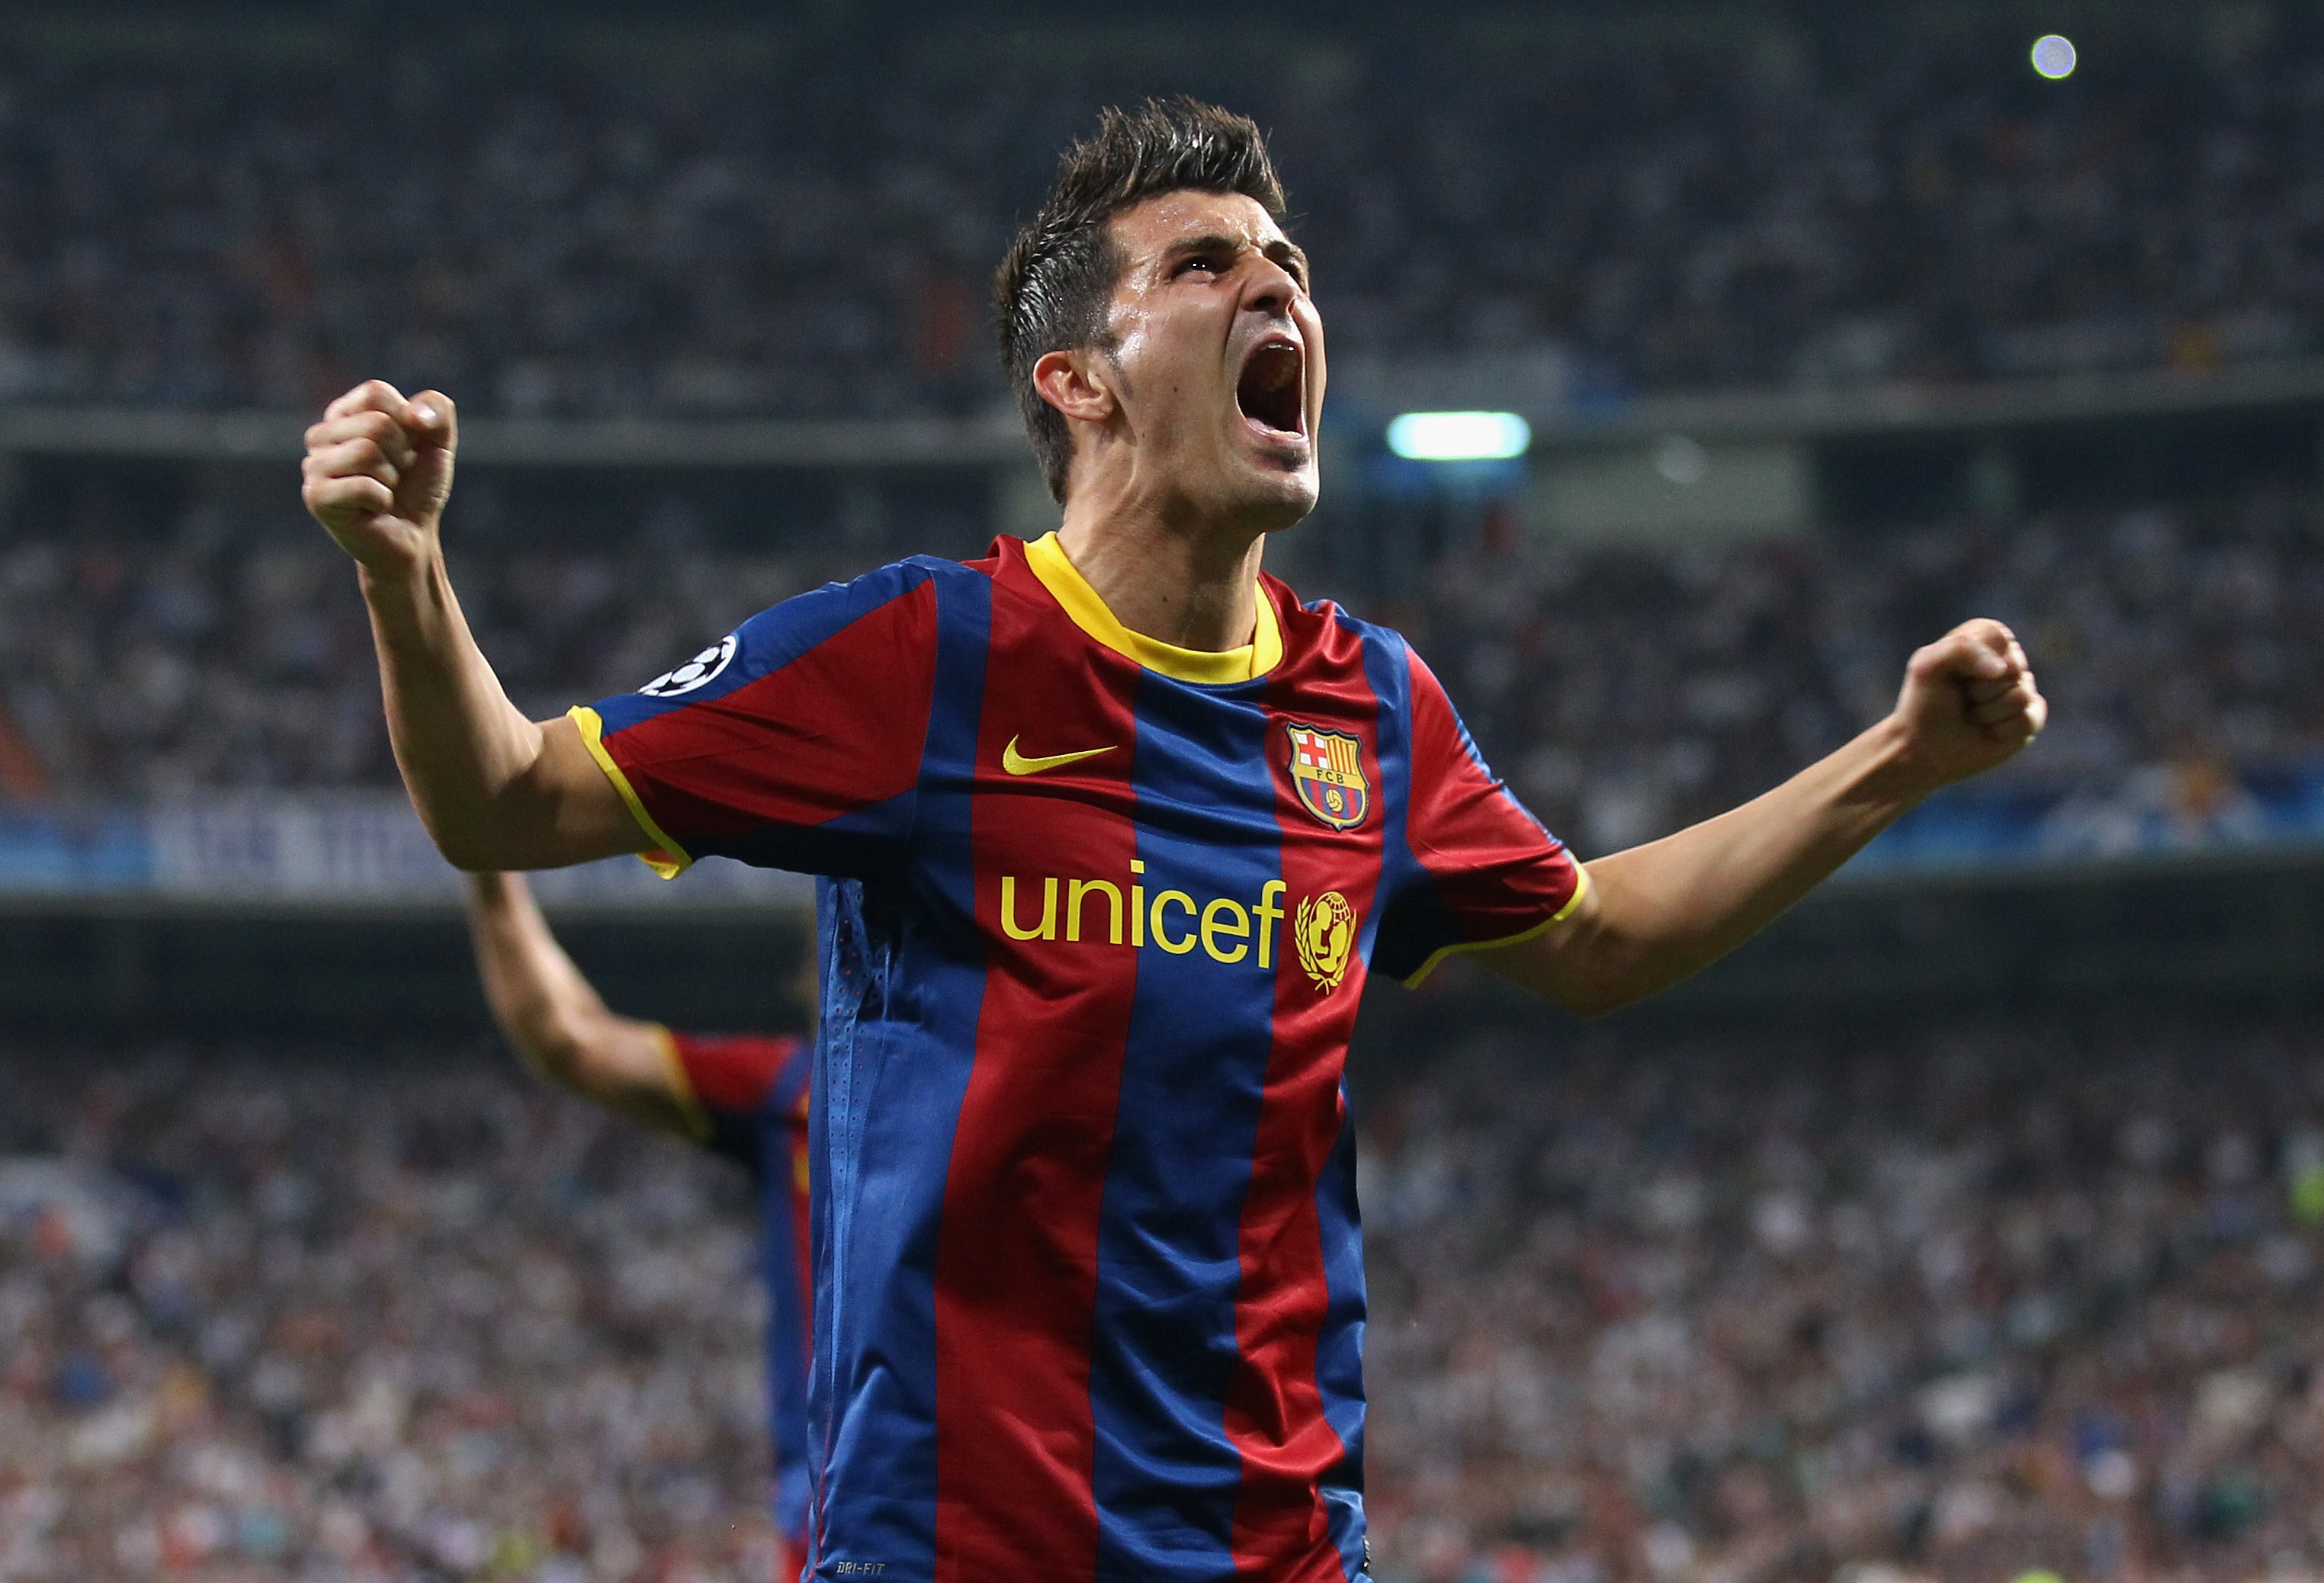 MADRID, SPAIN - APRIL 27:  David Villa of Barcelona celebrates after Lionel Messi scores the opening goal during the UEFA Champions League Semi Final first leg match between Real Madrid and Barcelona at Estadio Santiago Bernabeu on April 27, 2011 in Madri